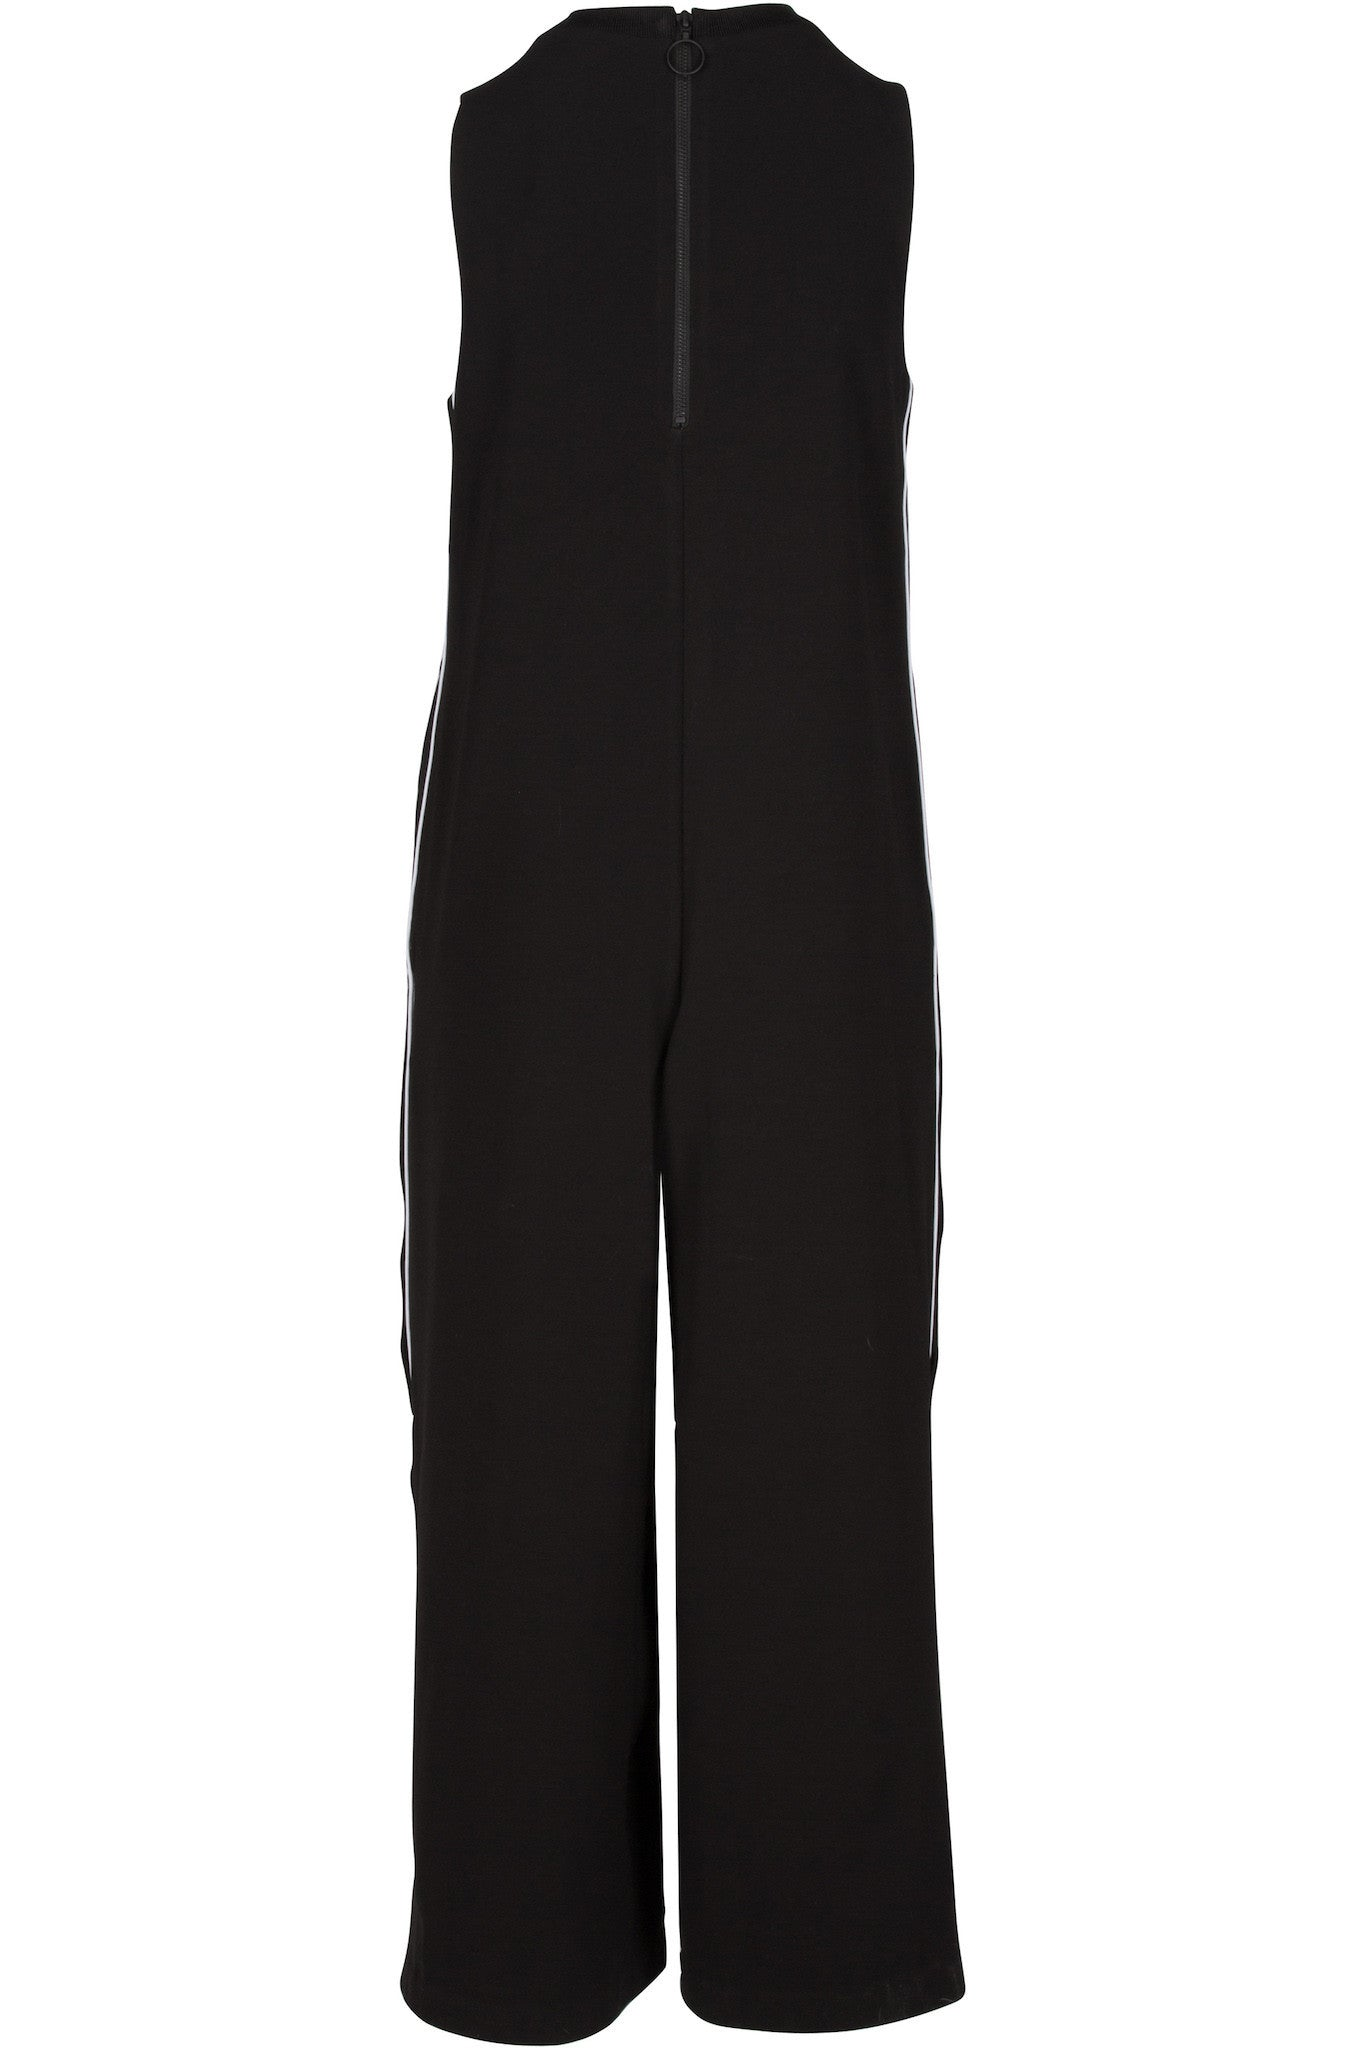 WIDELEG SNAP JUMPSUIT PANTS by KENDALL + KYLIE